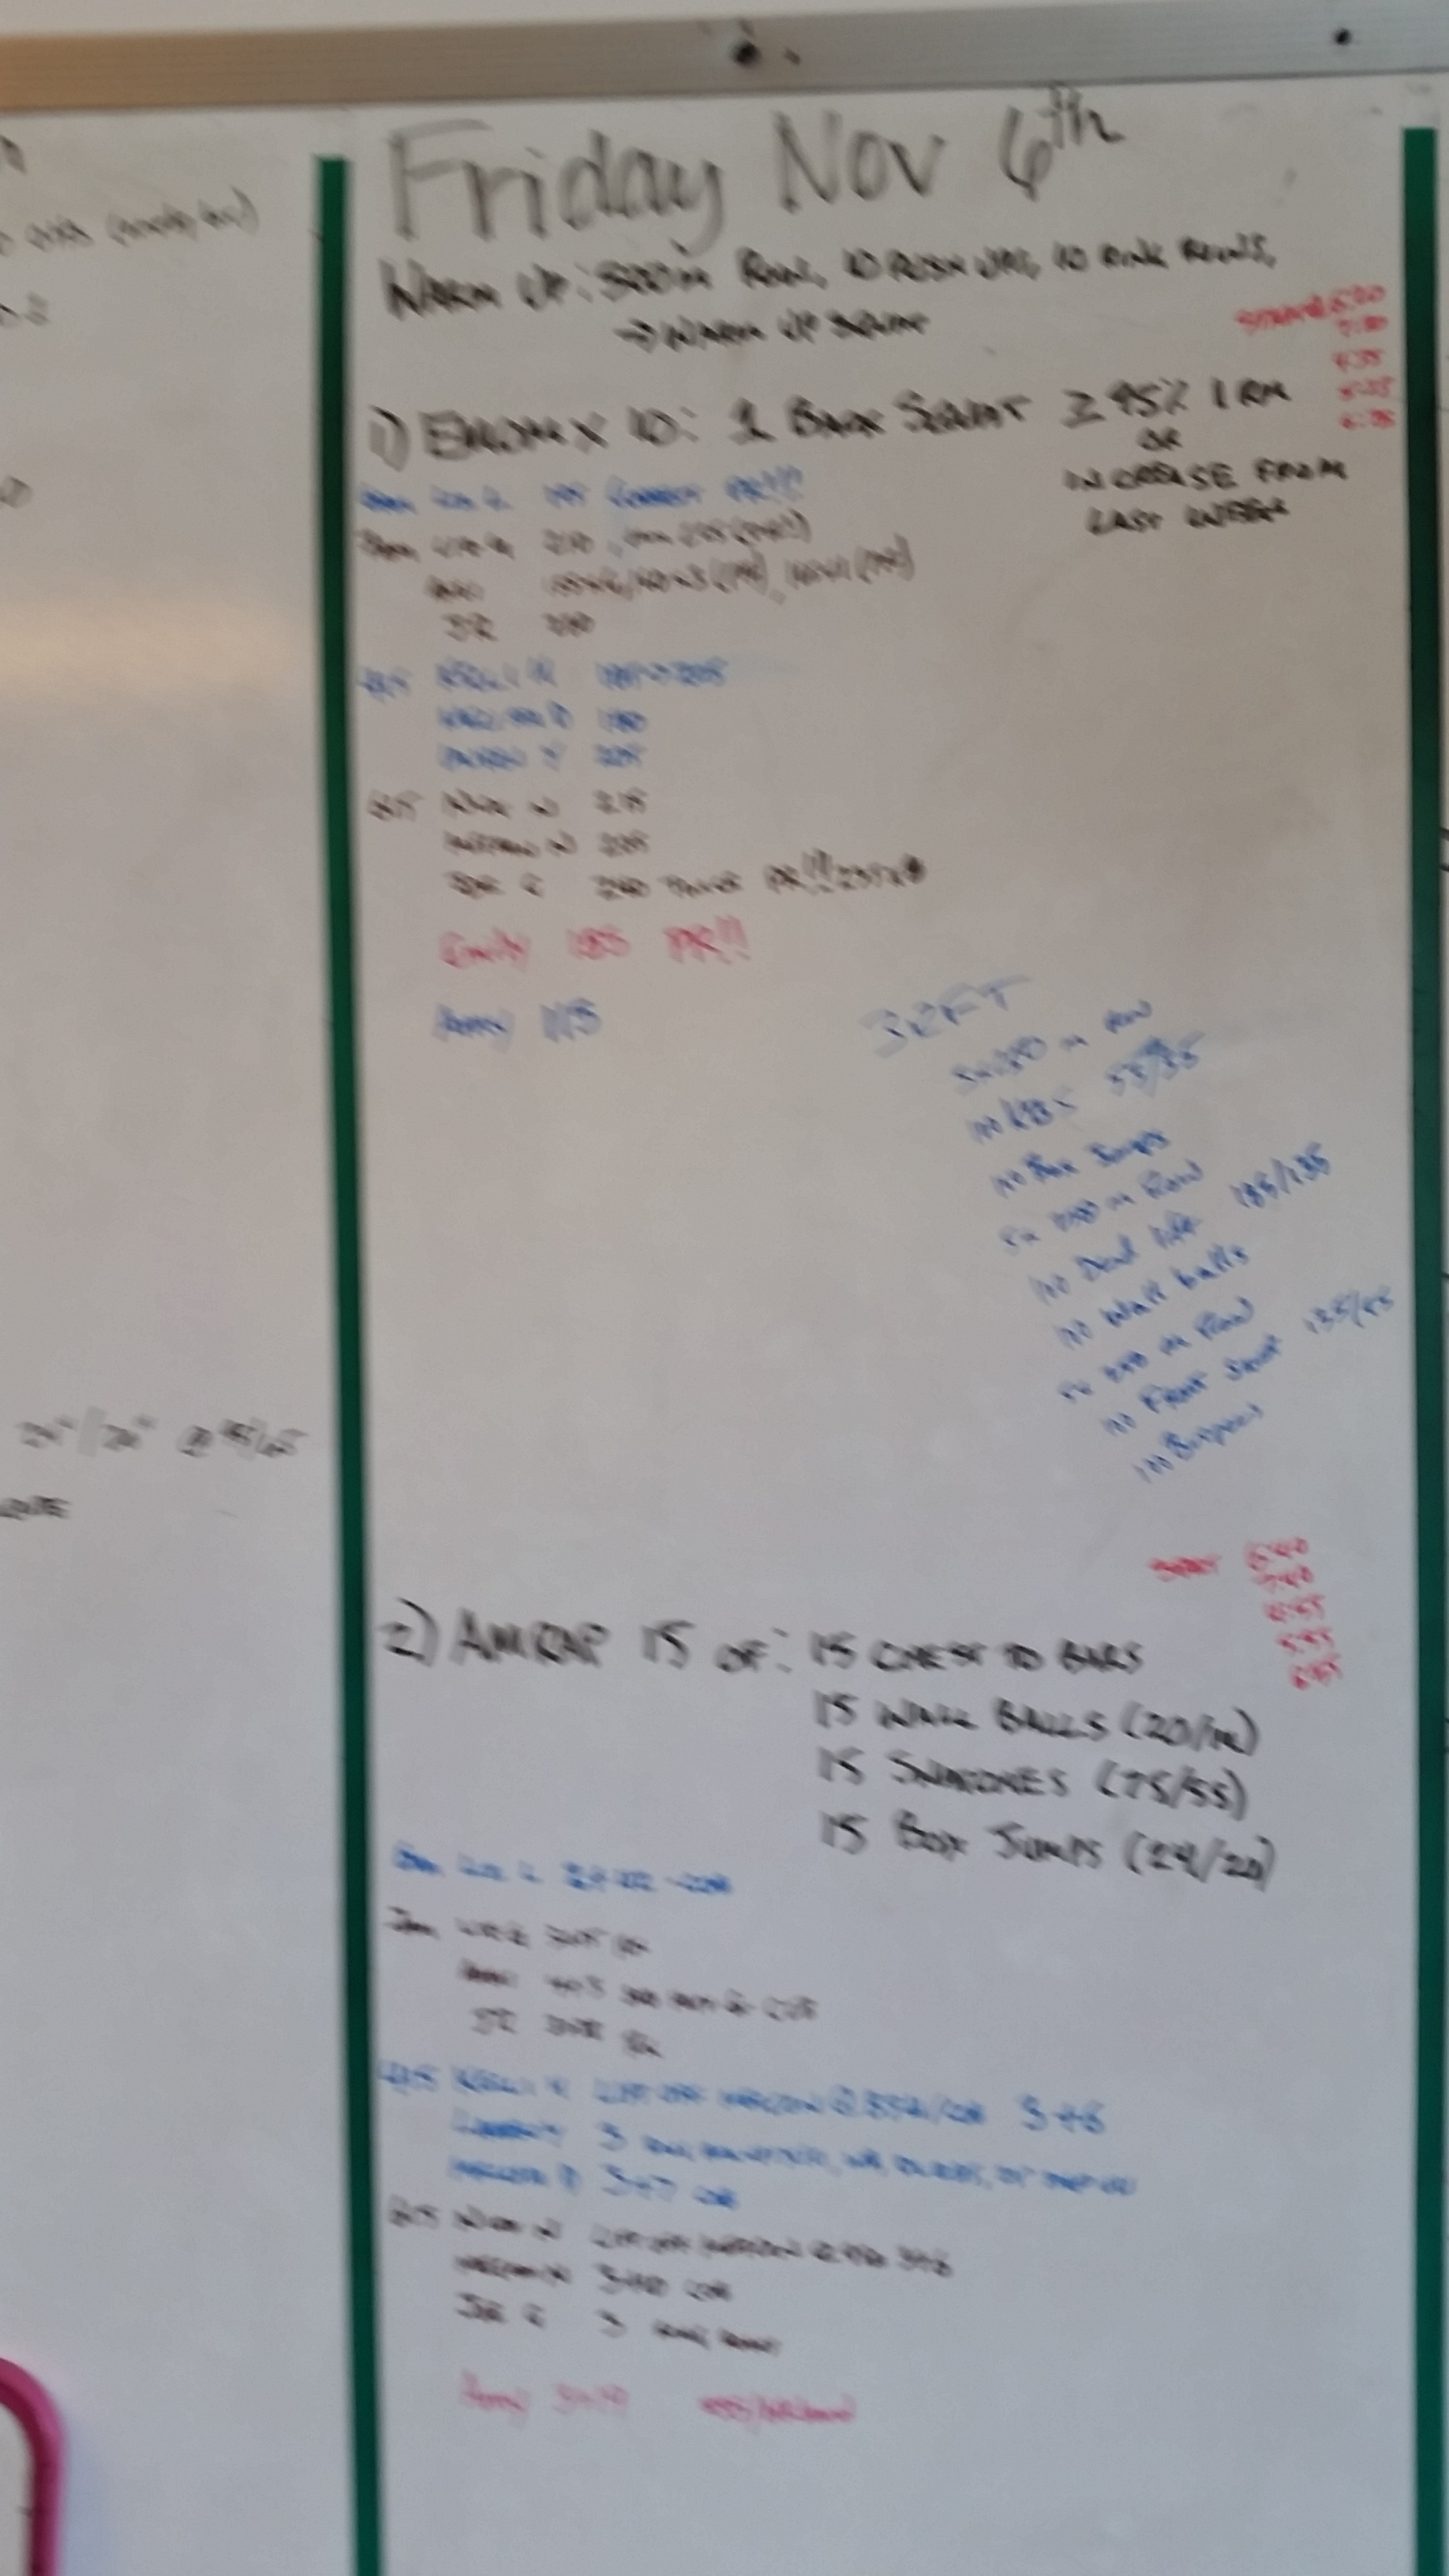 20151106  CrossFit Craft Back Squat Chest to Bar Pull Ups Wall Balls Snatches Box Jumps